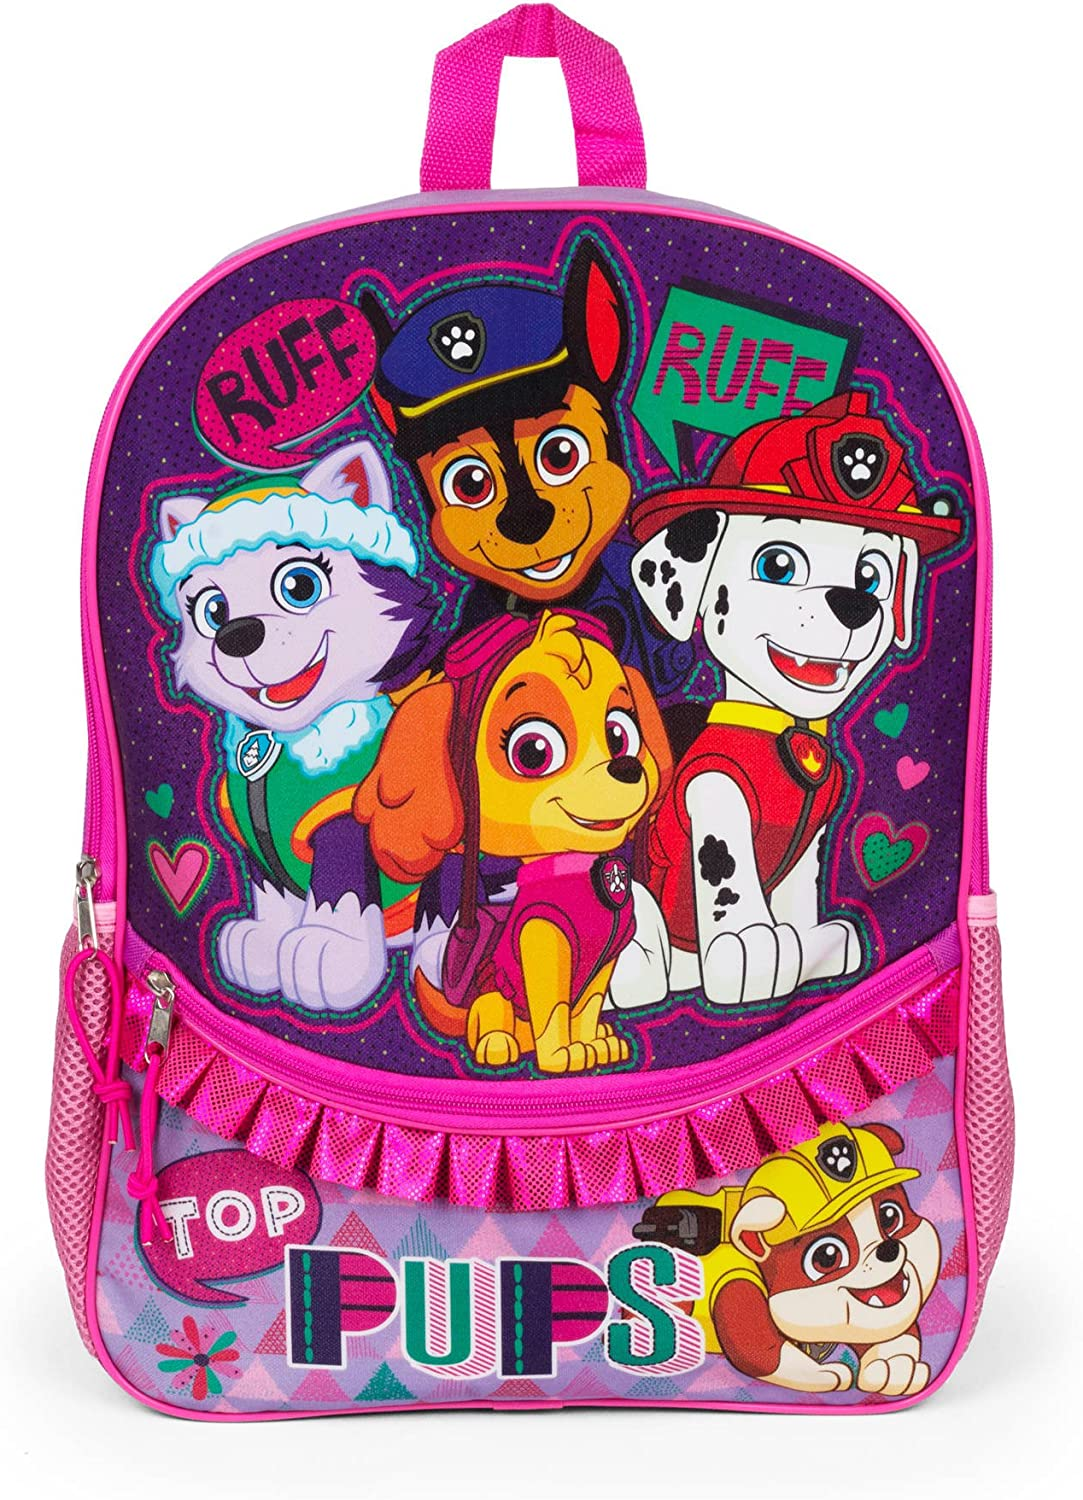 Paw Patrol 16 Backpack with Ruffle Top Pups